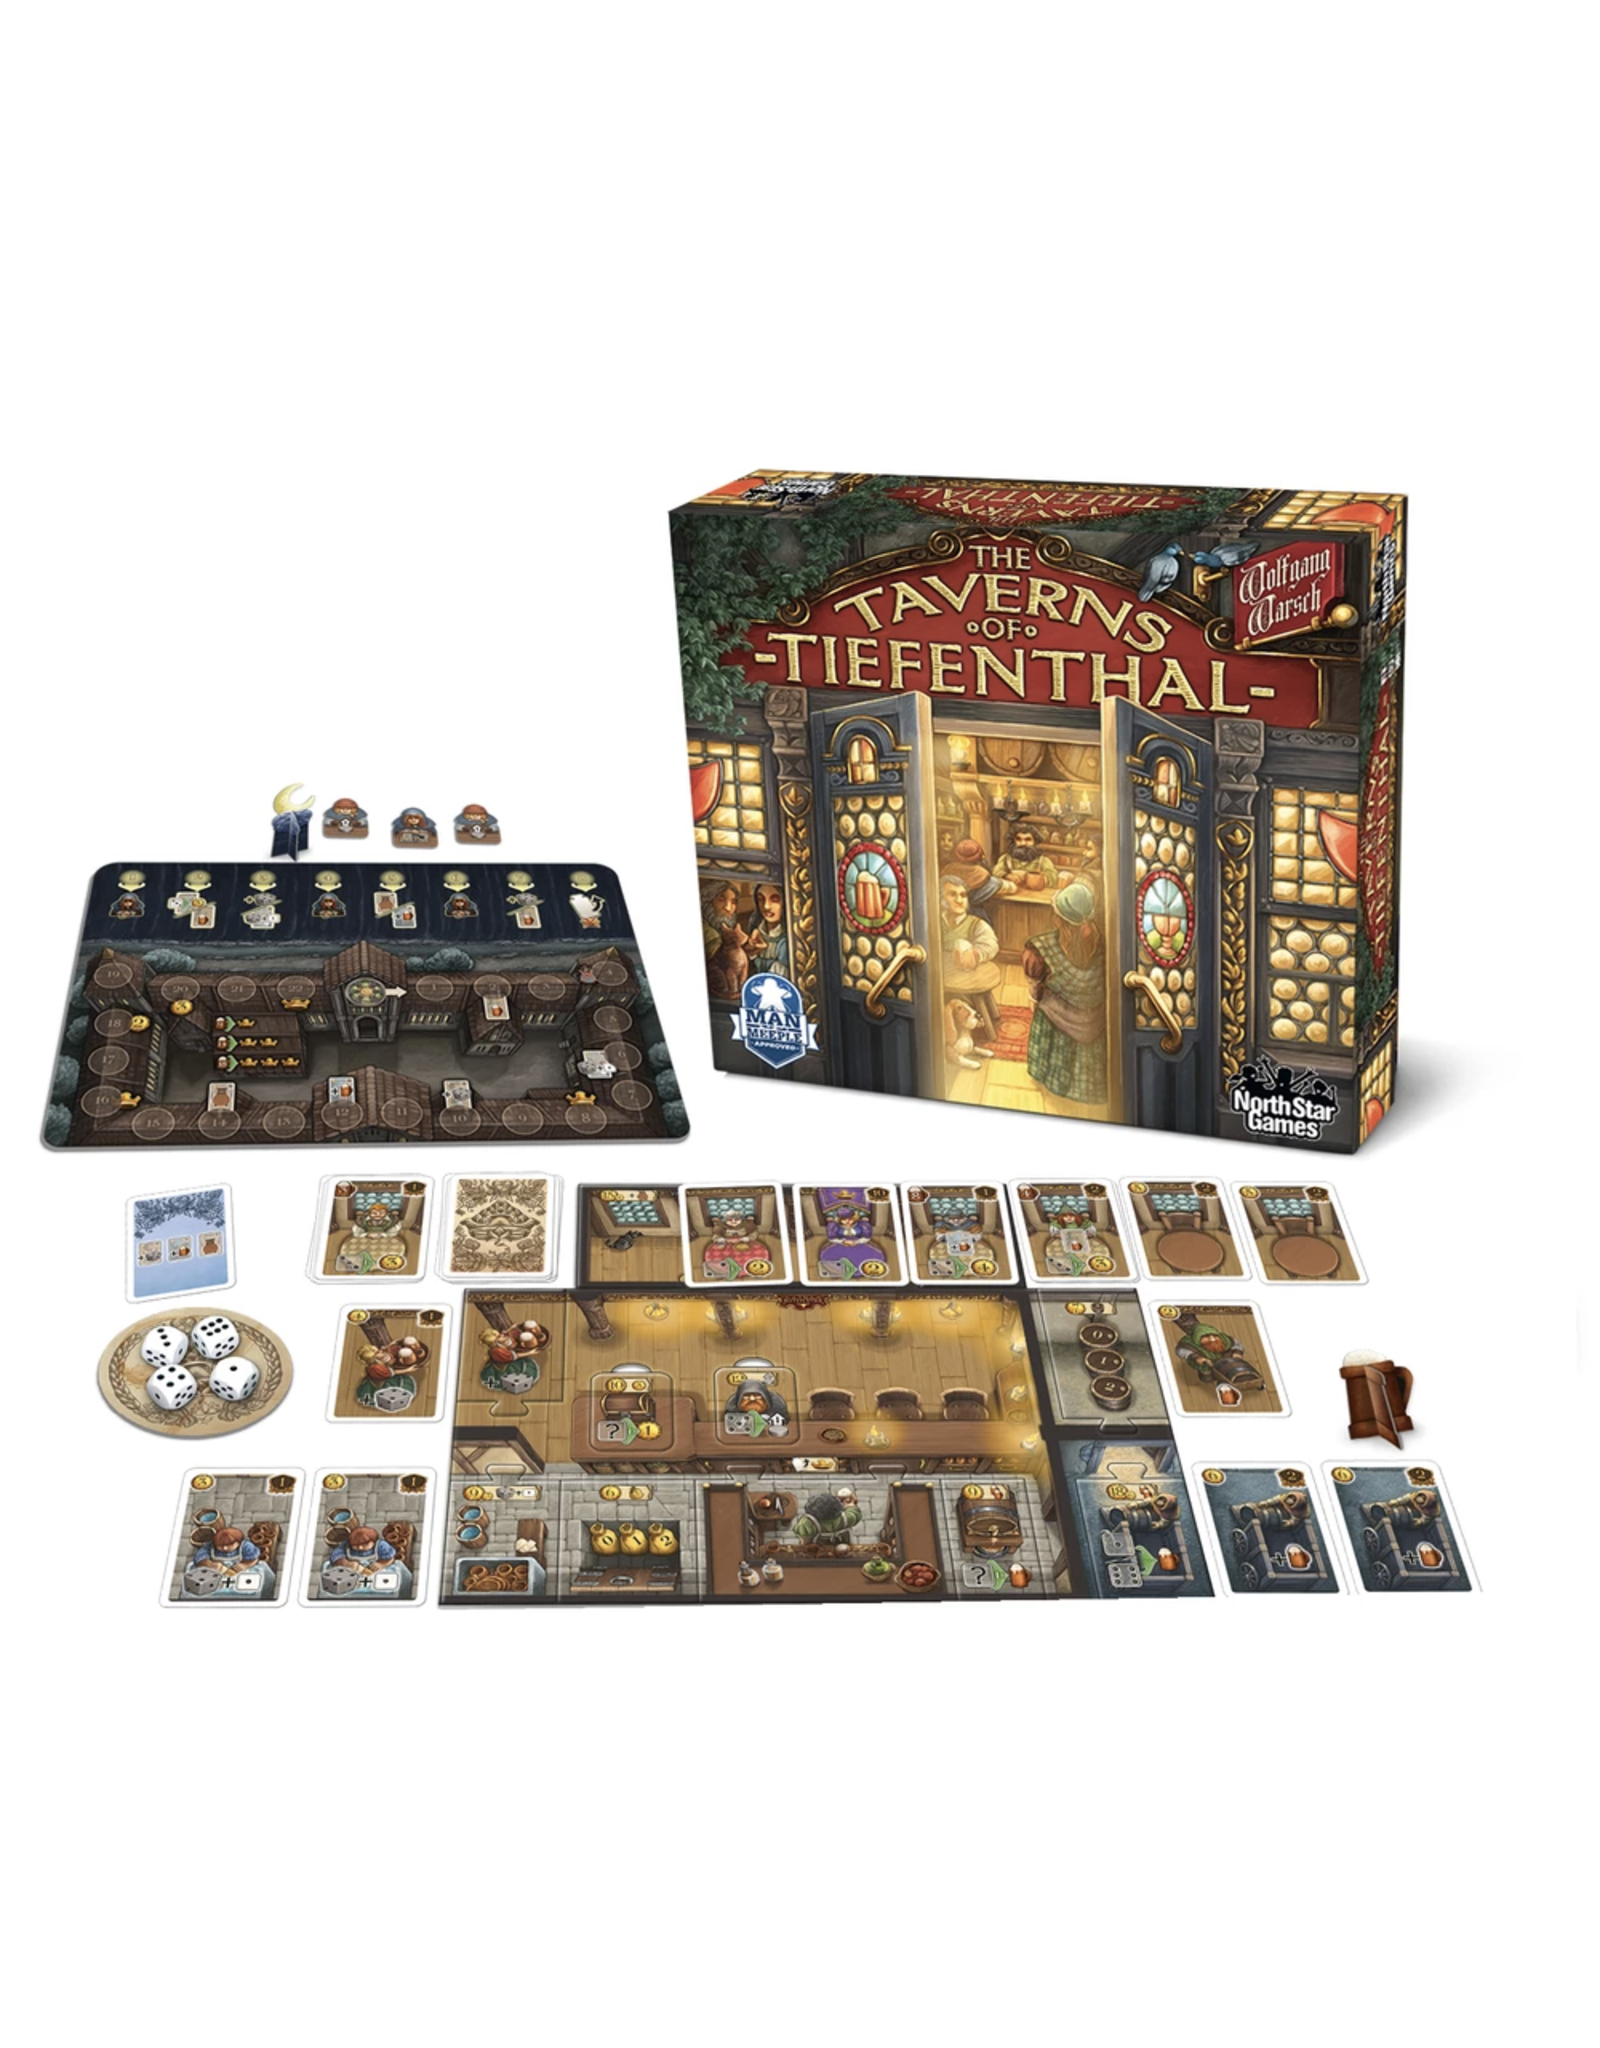 North Star Games Taverns of Thiefenthal (the) [anglais]